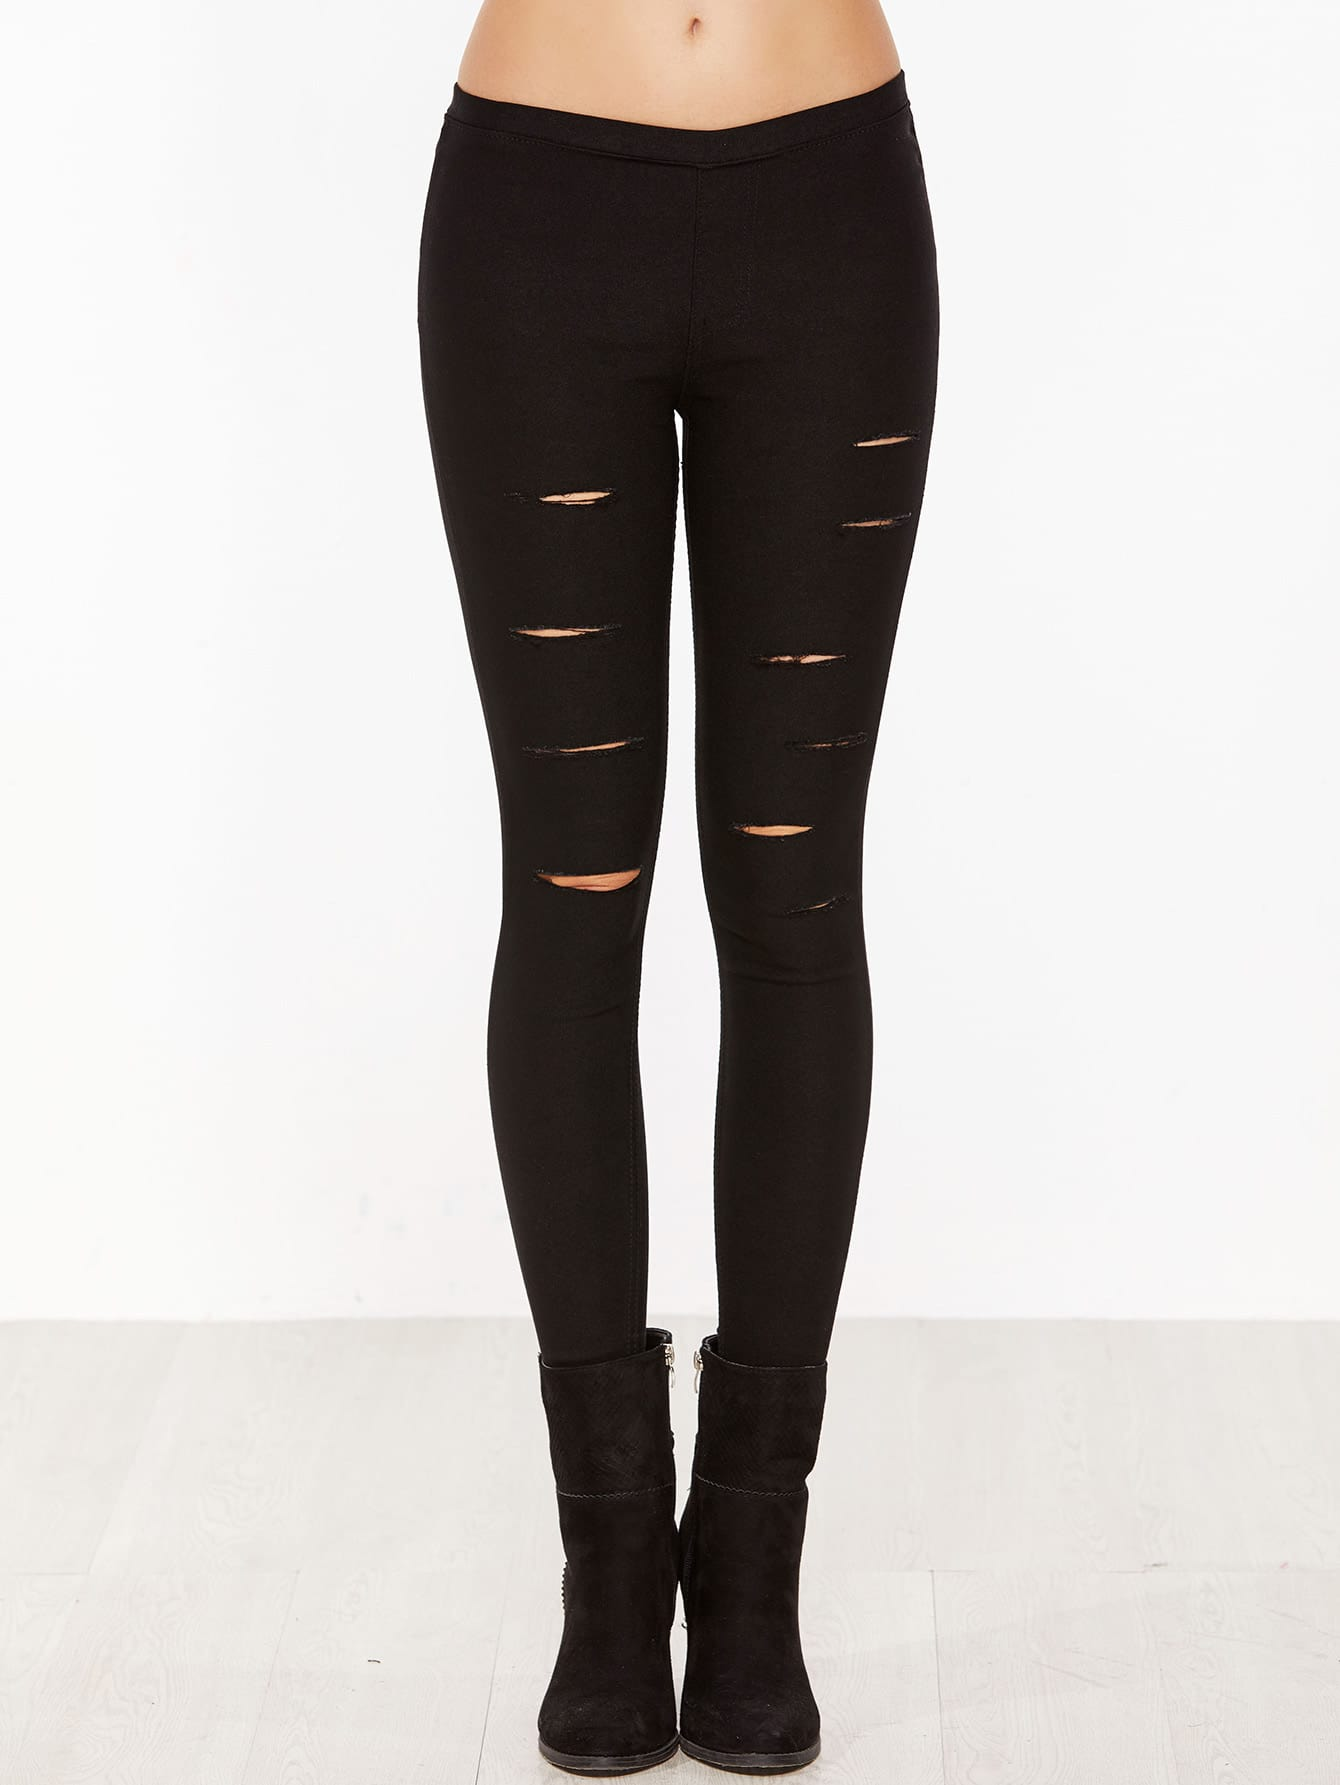 Black Skinny Ripped Elastic PantsBlack Skinny Ripped Elastic Pants<br><br>color: Black<br>size: L,S